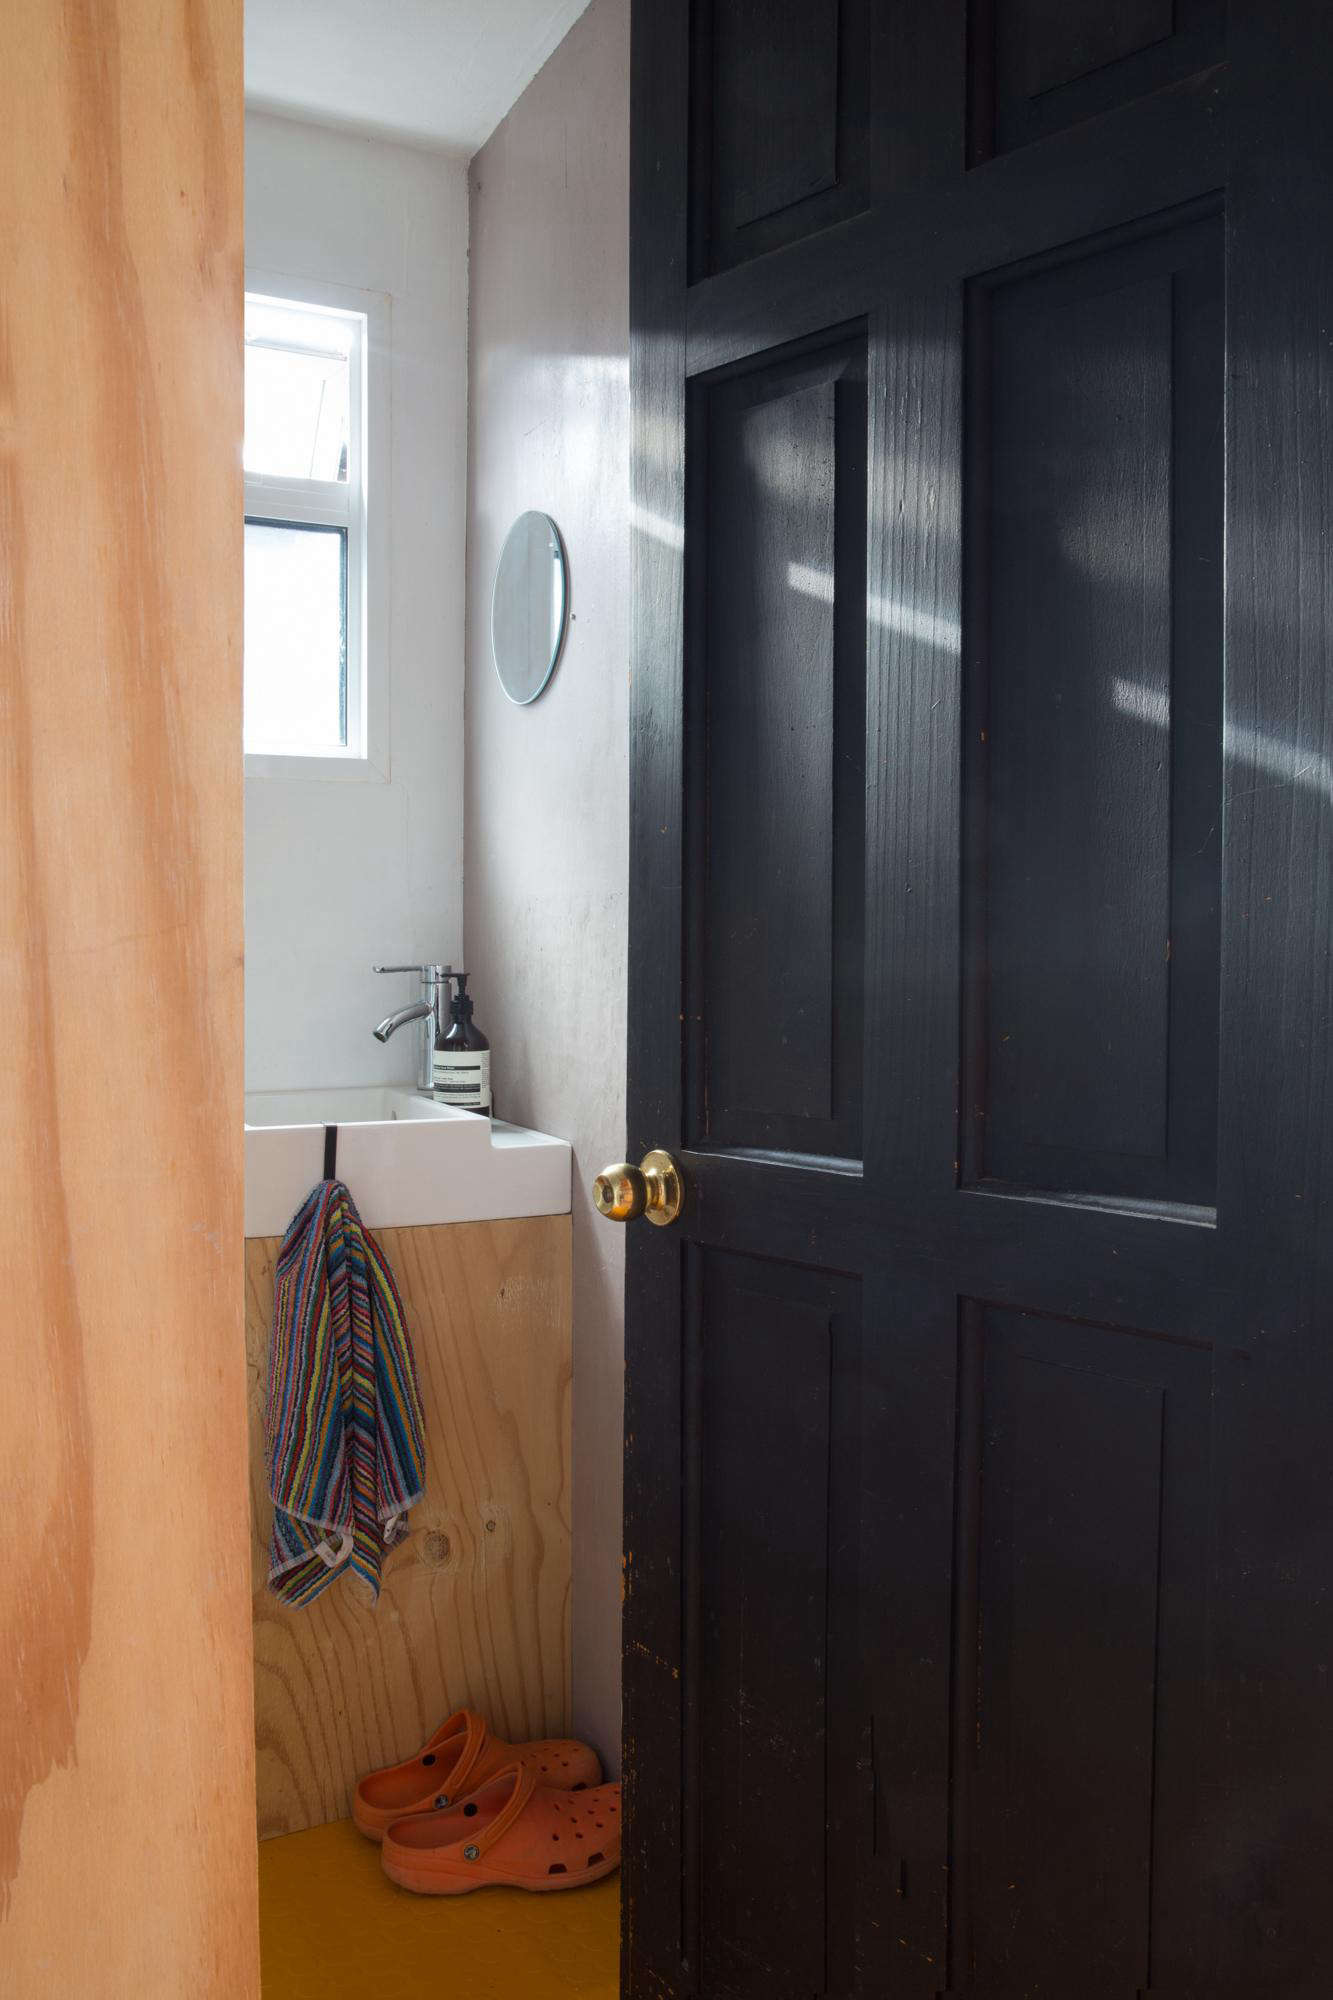 The tiny plywood bathroom has just enough room for the door to open. &#8